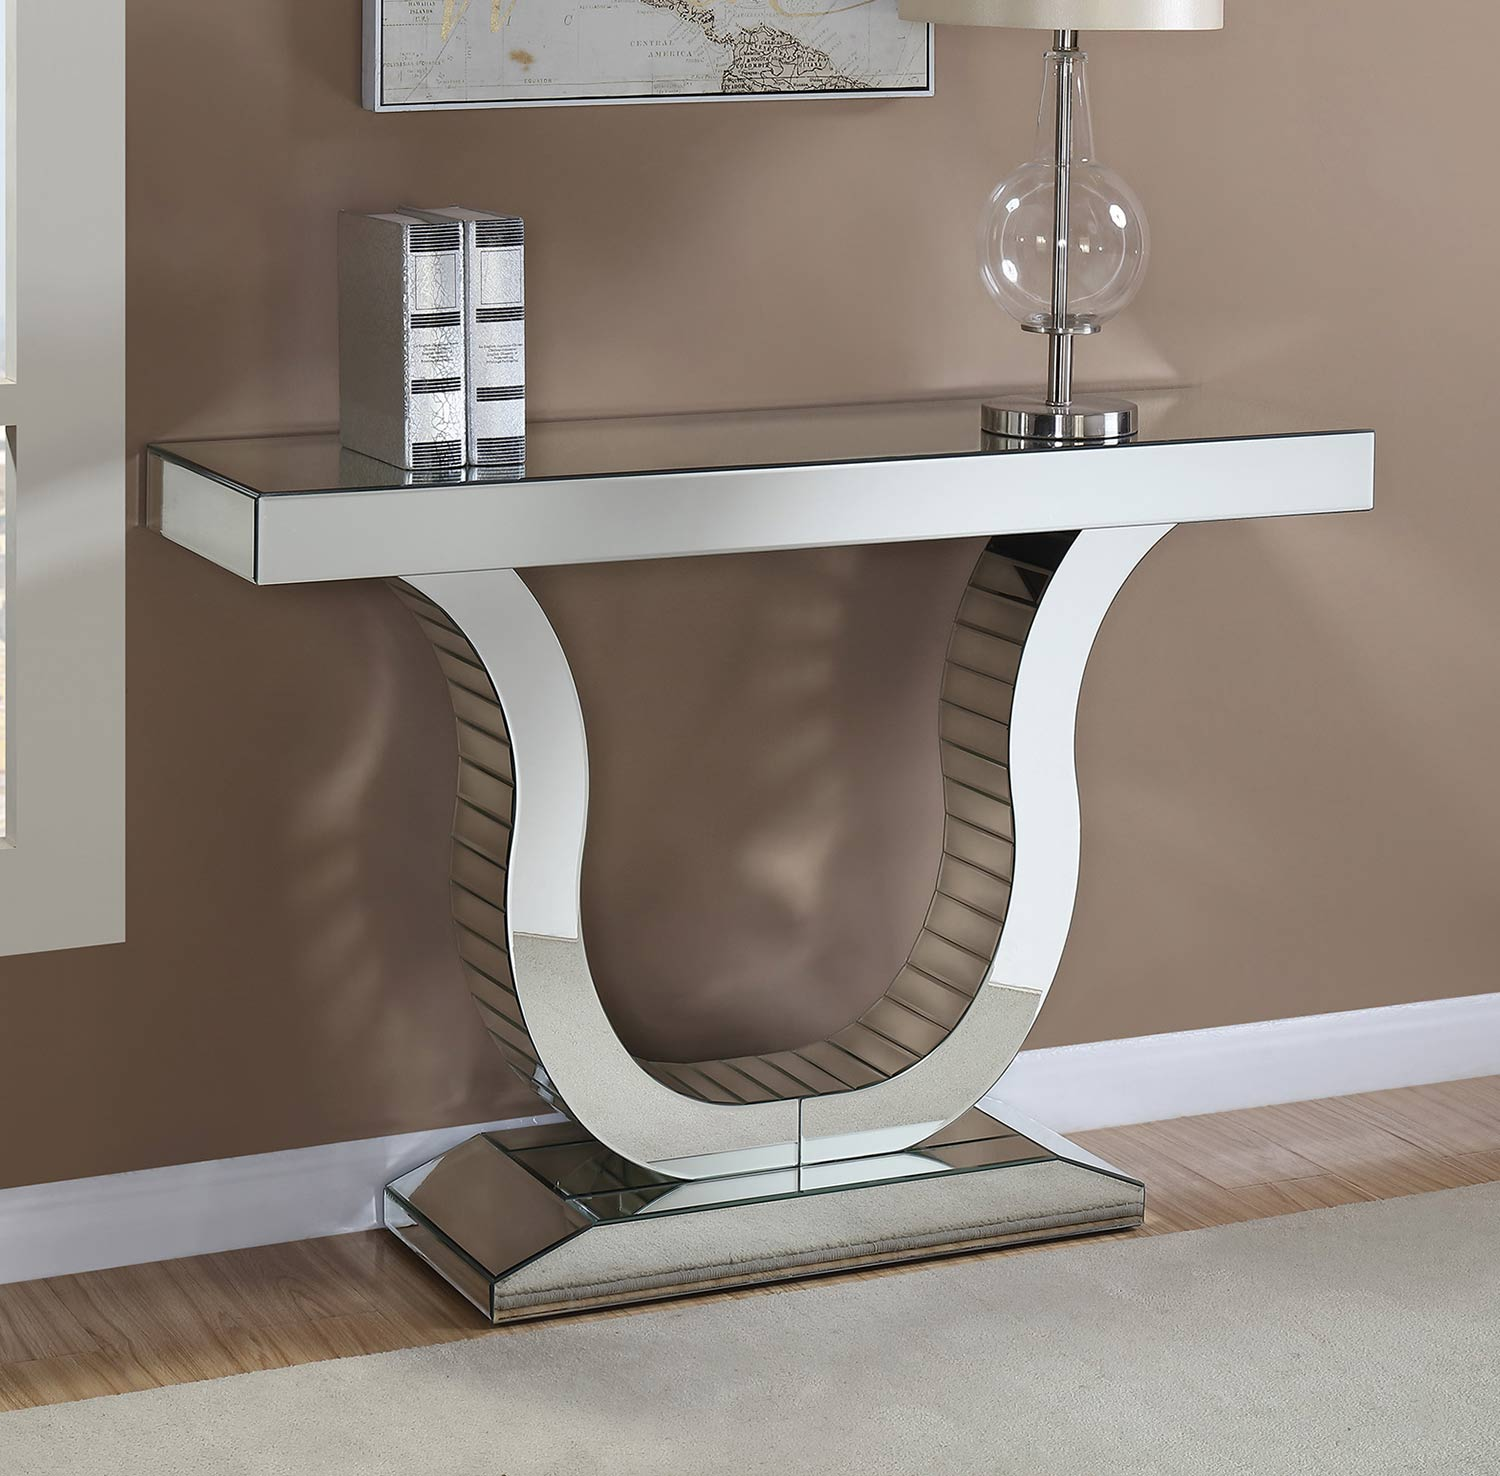 Coaster 930010 Console Table - Clear Mirror